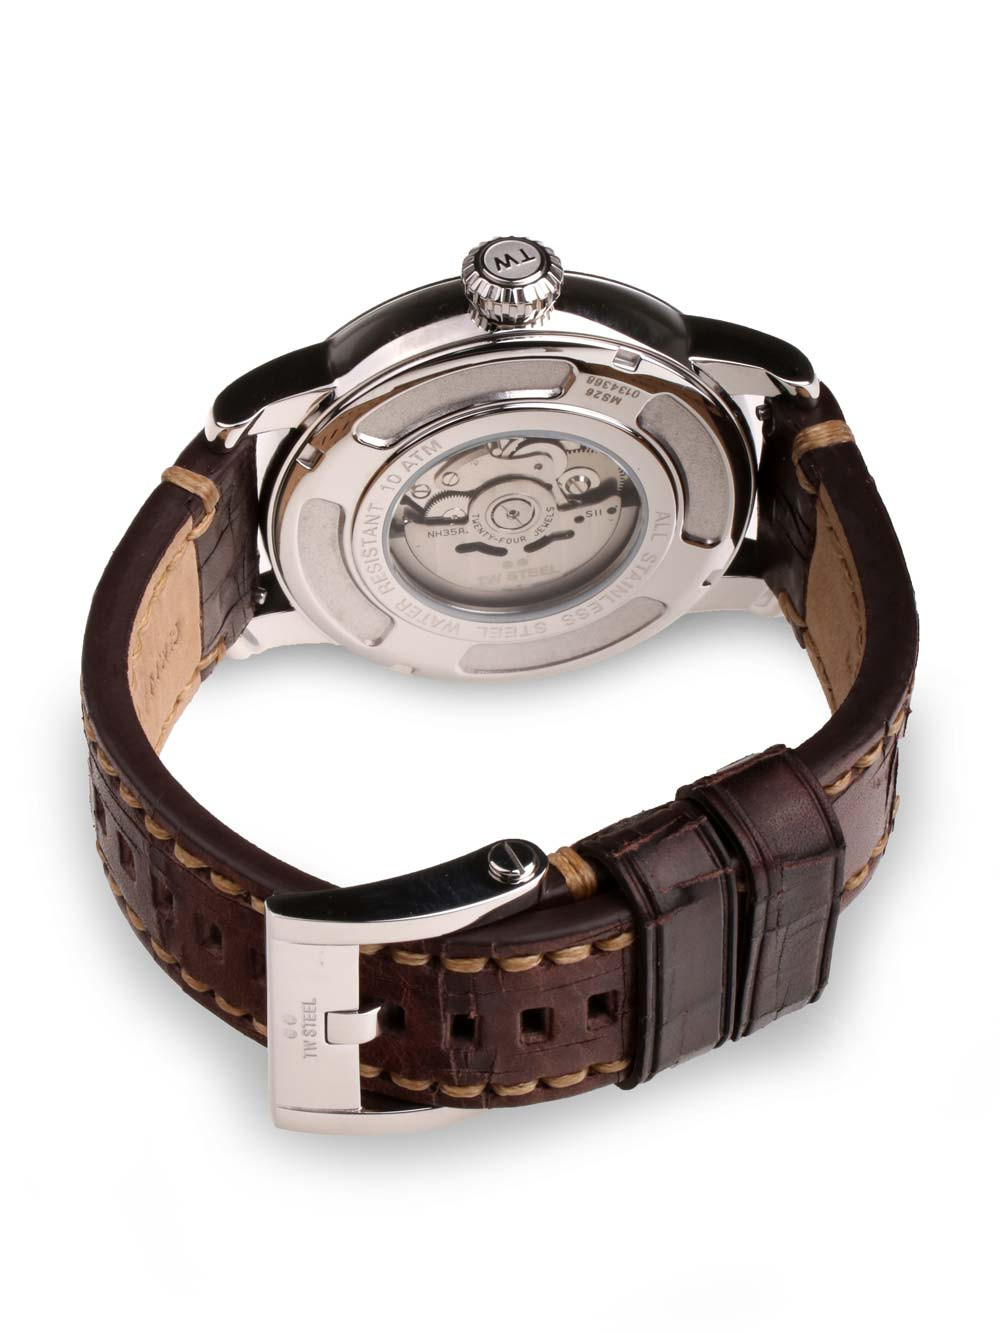 TW-Steel MS26 Maverick Automatik 48mm 10ATM